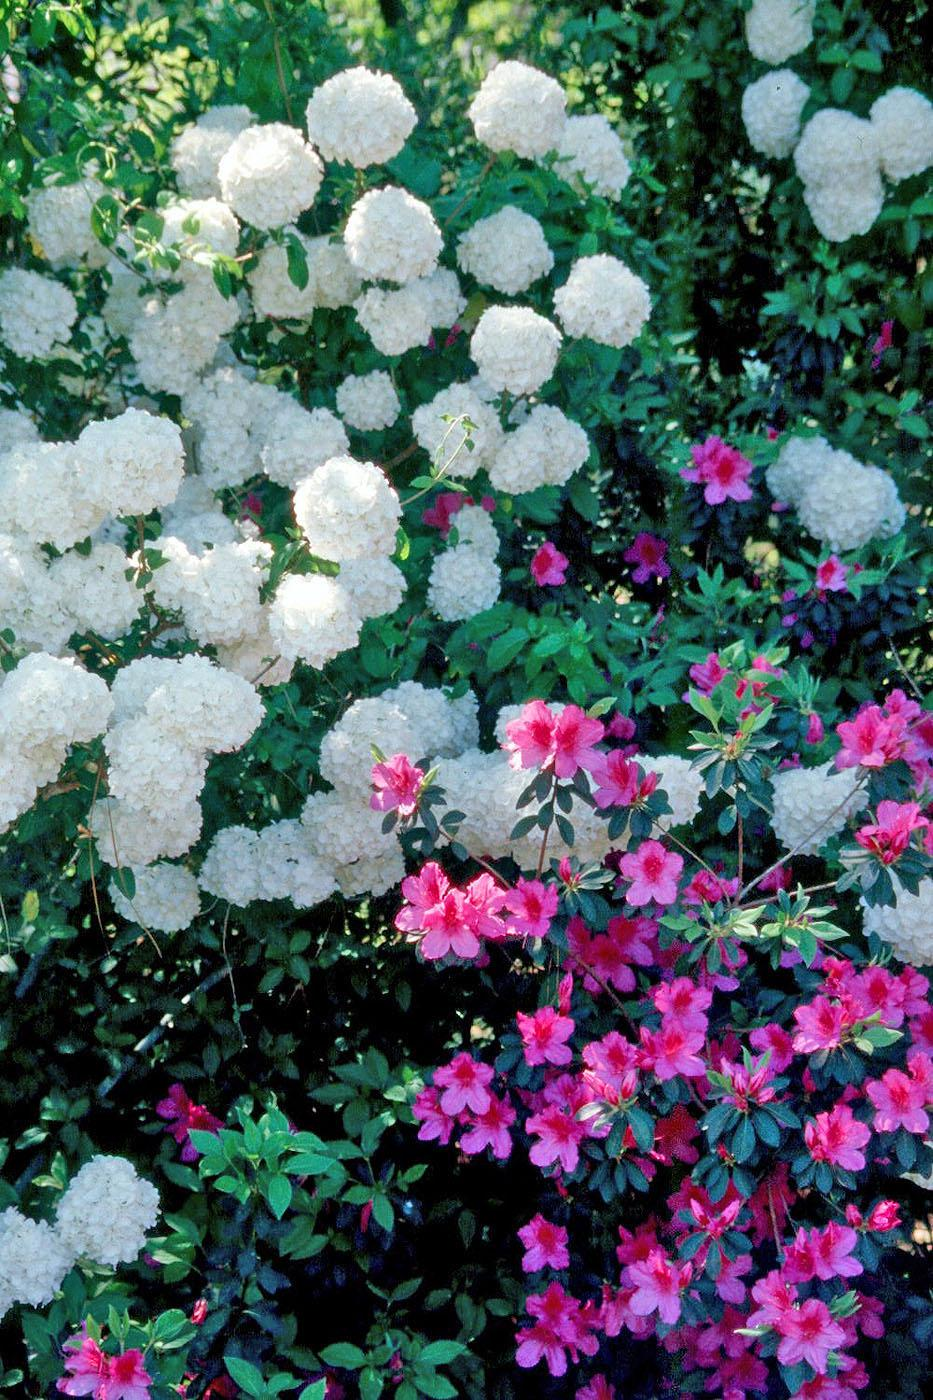 The snowball viburnum produces 6- to 8-inch glistening white blossoms. While three or four flowers would make a dramatic statement, the Chinese snowball produces them by the scores.